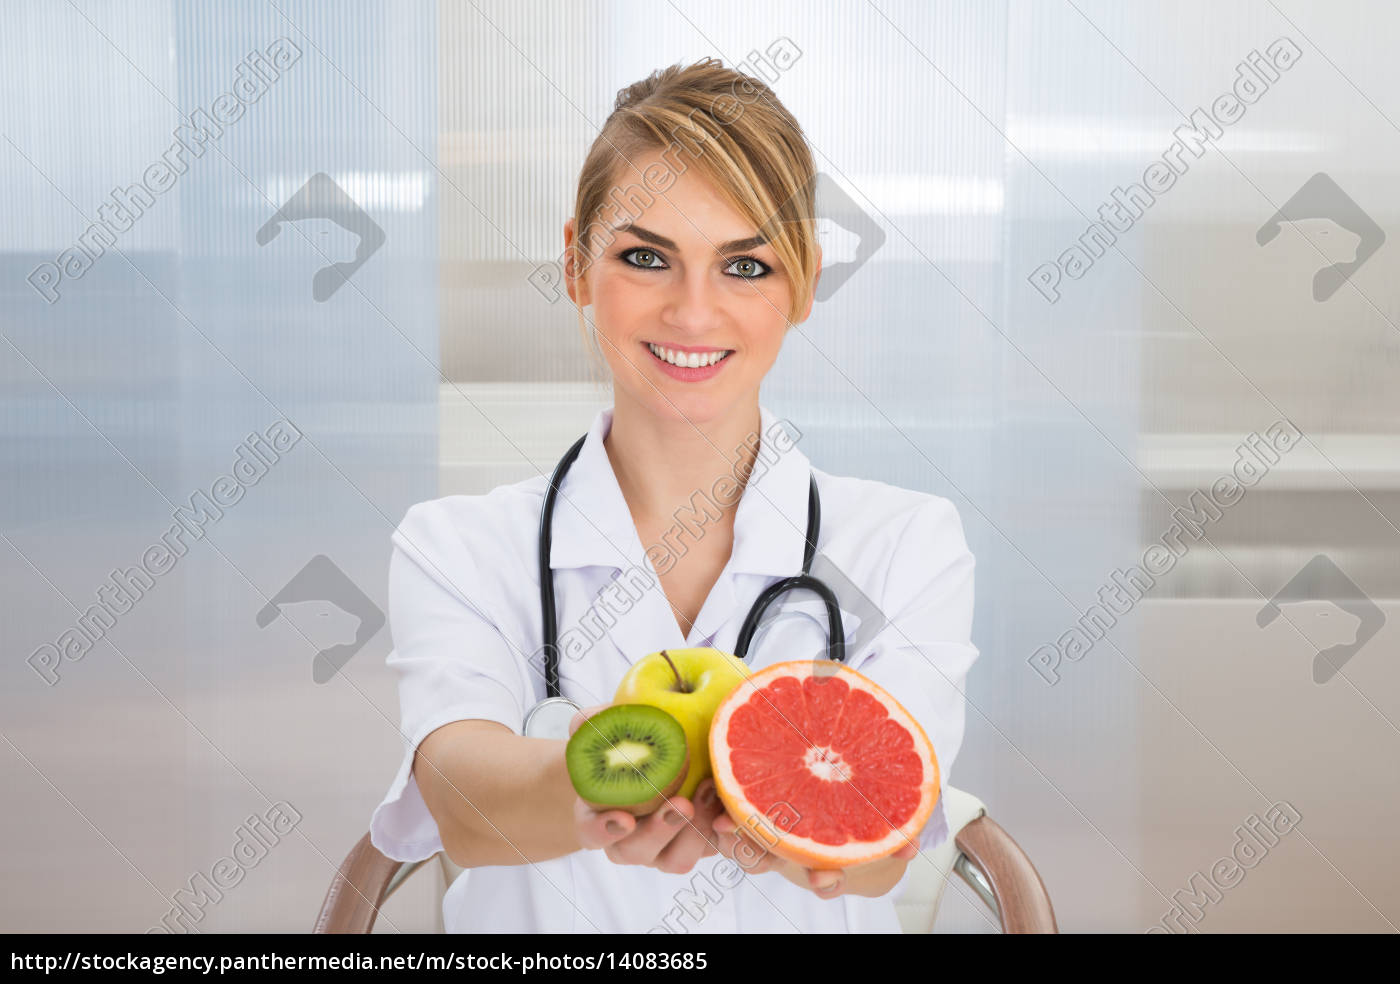 female, dietician, holding, fruits - 14083685